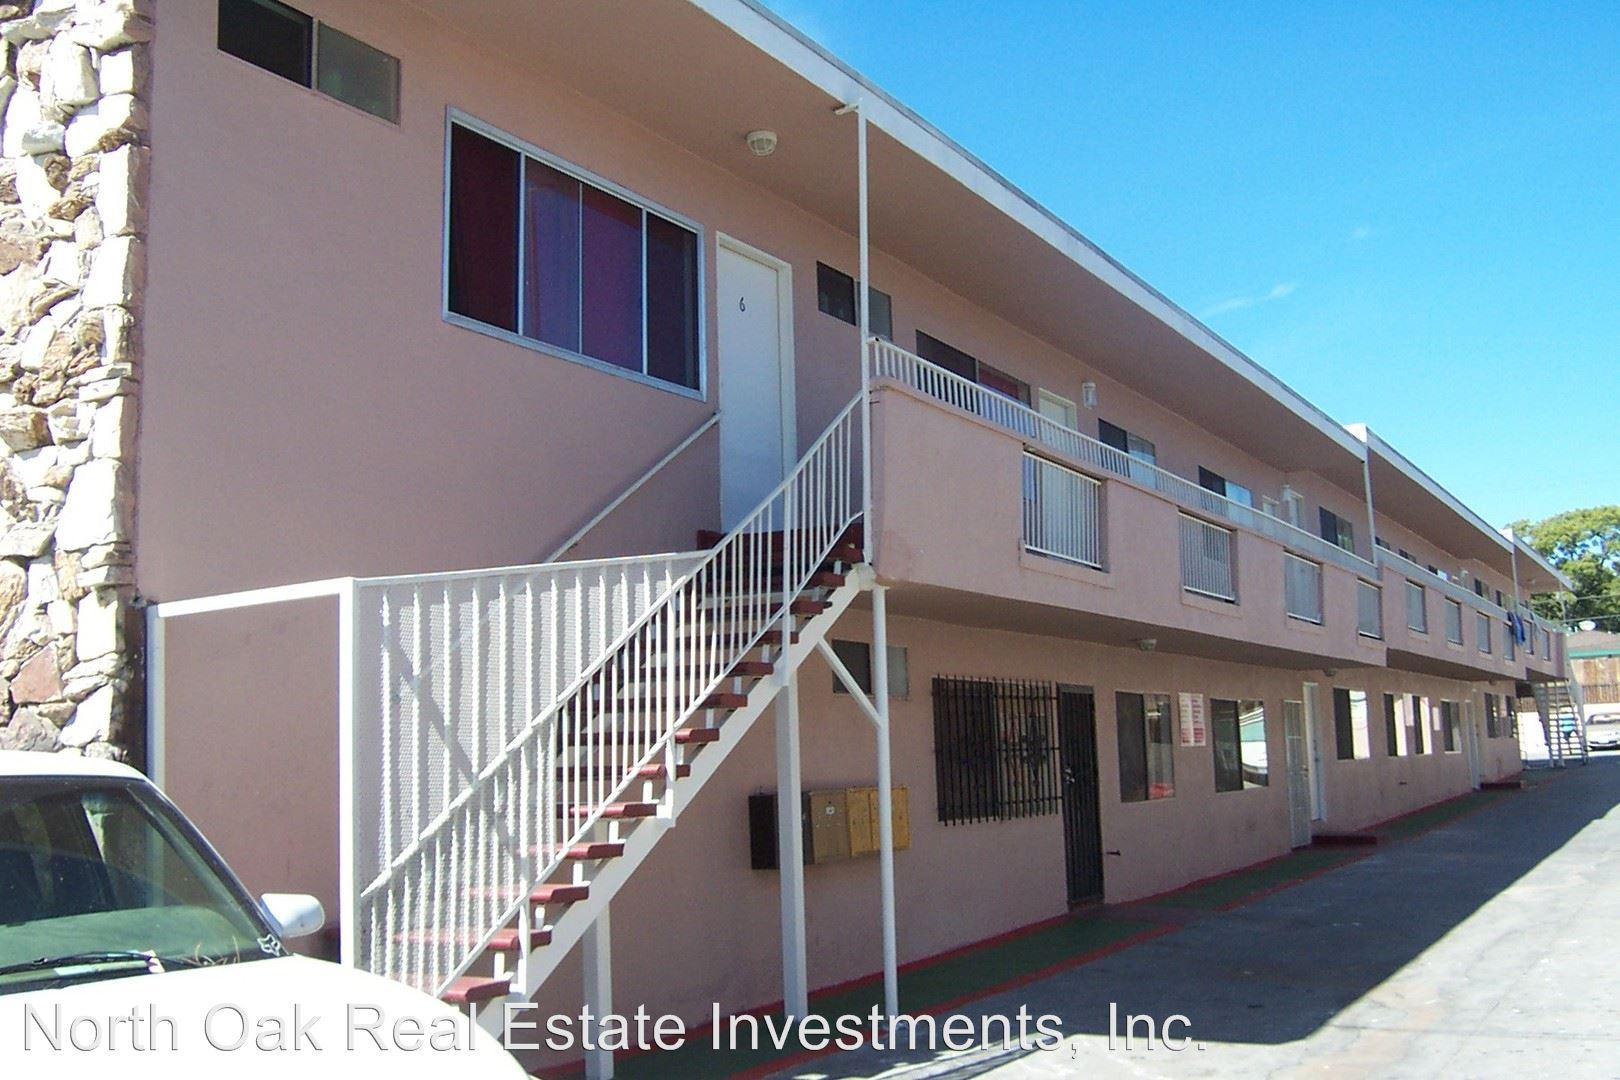 3253 DREW ST., APT. 6 photo #1